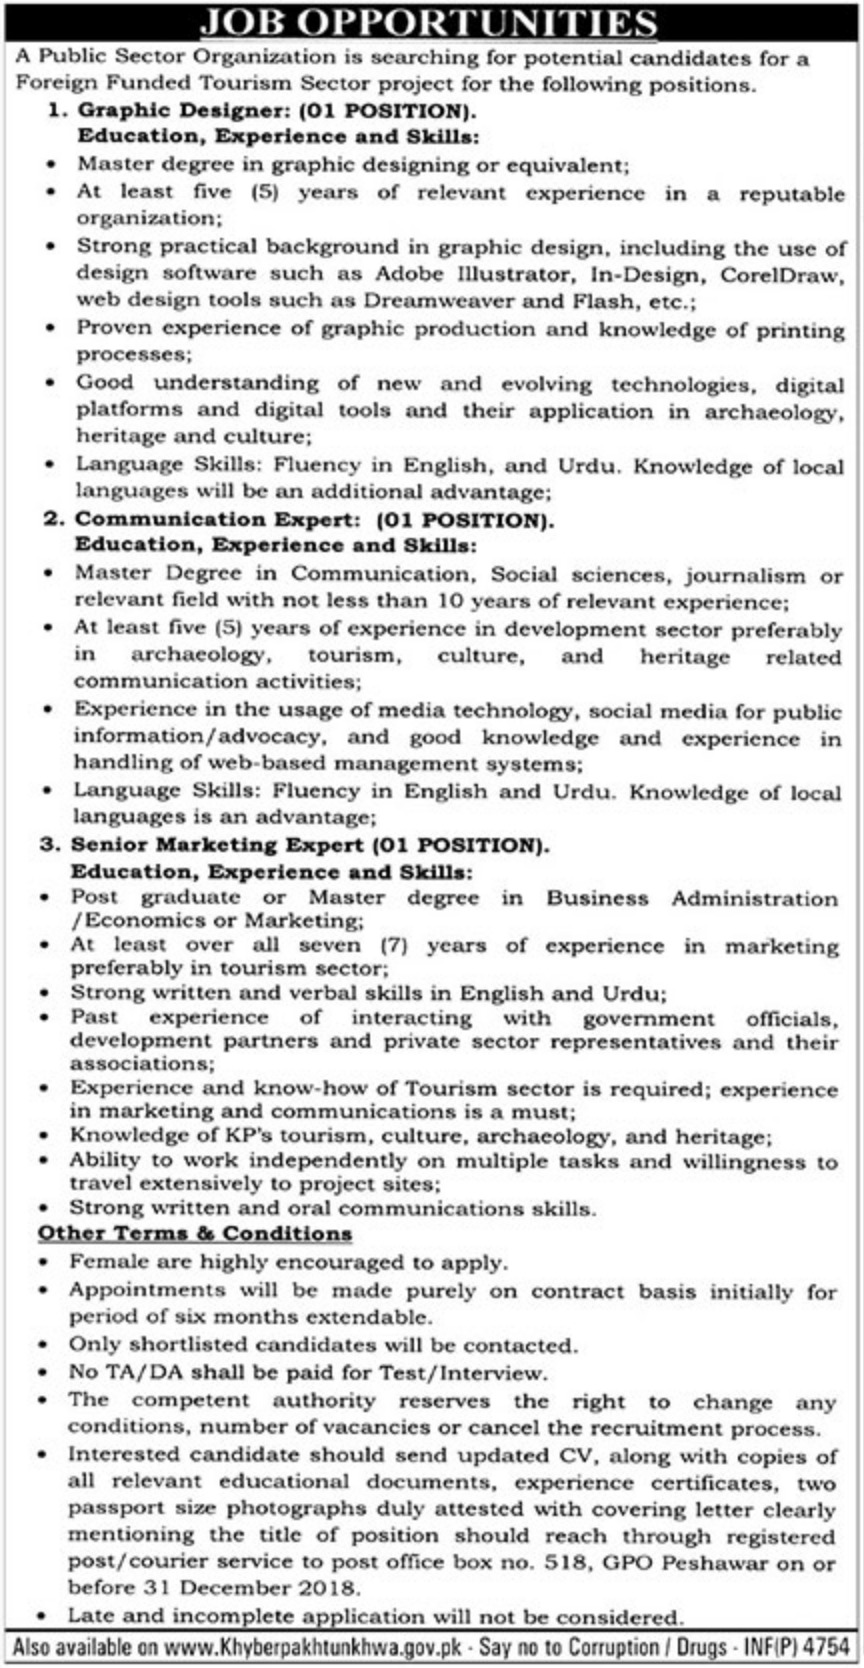 P.O.Box 518 Peshawar Jobs 2018 Public Sector Organization